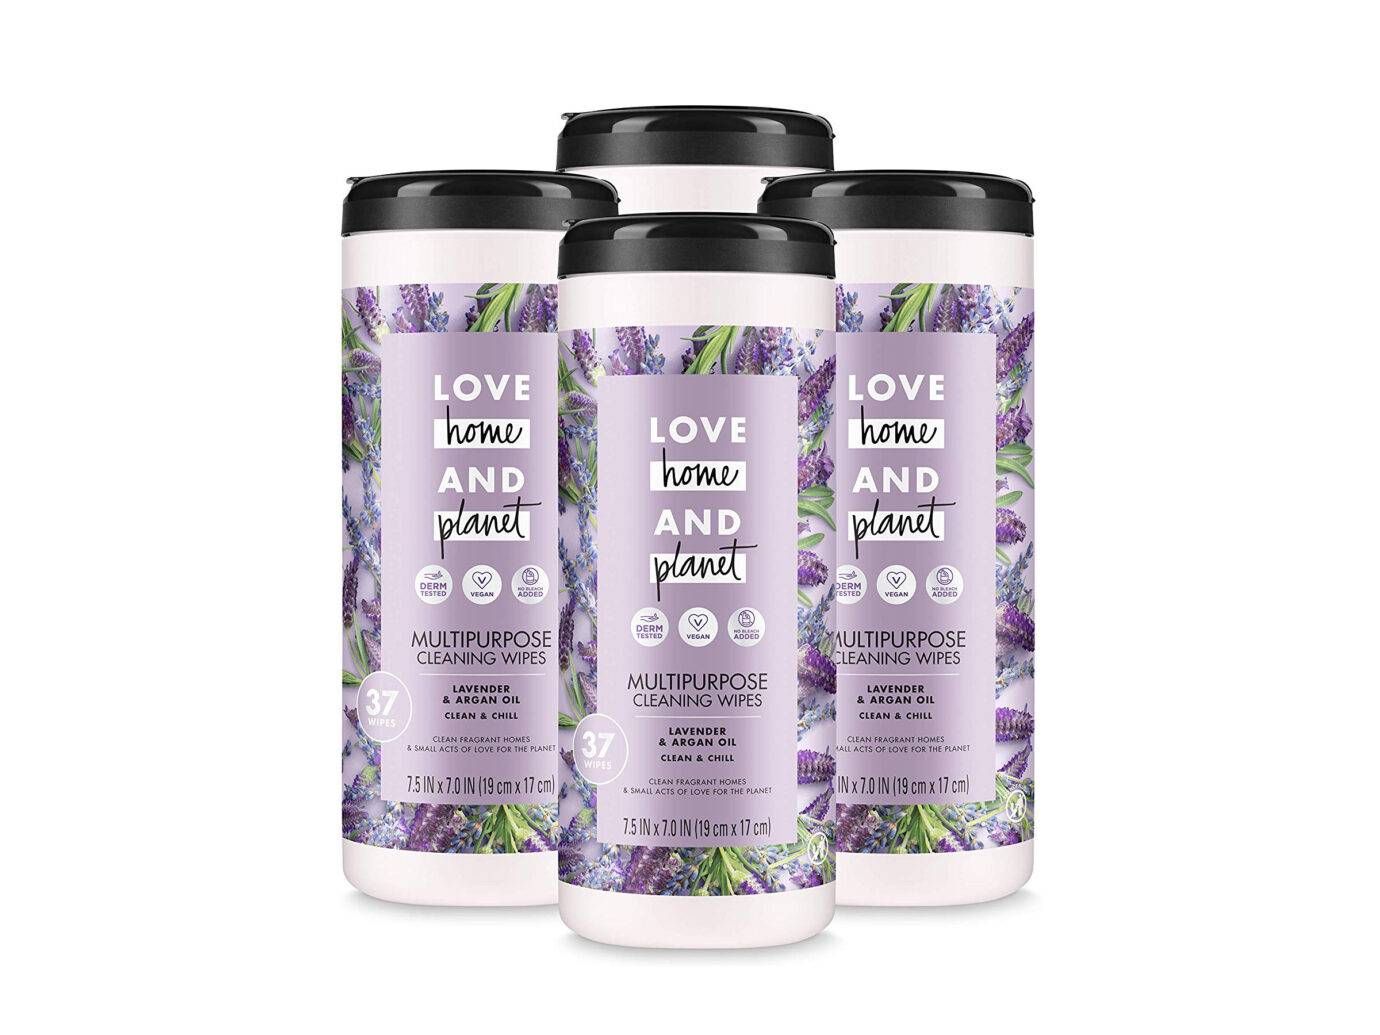 Love Home and Planet Multi-Purpose Cleaning Wipes